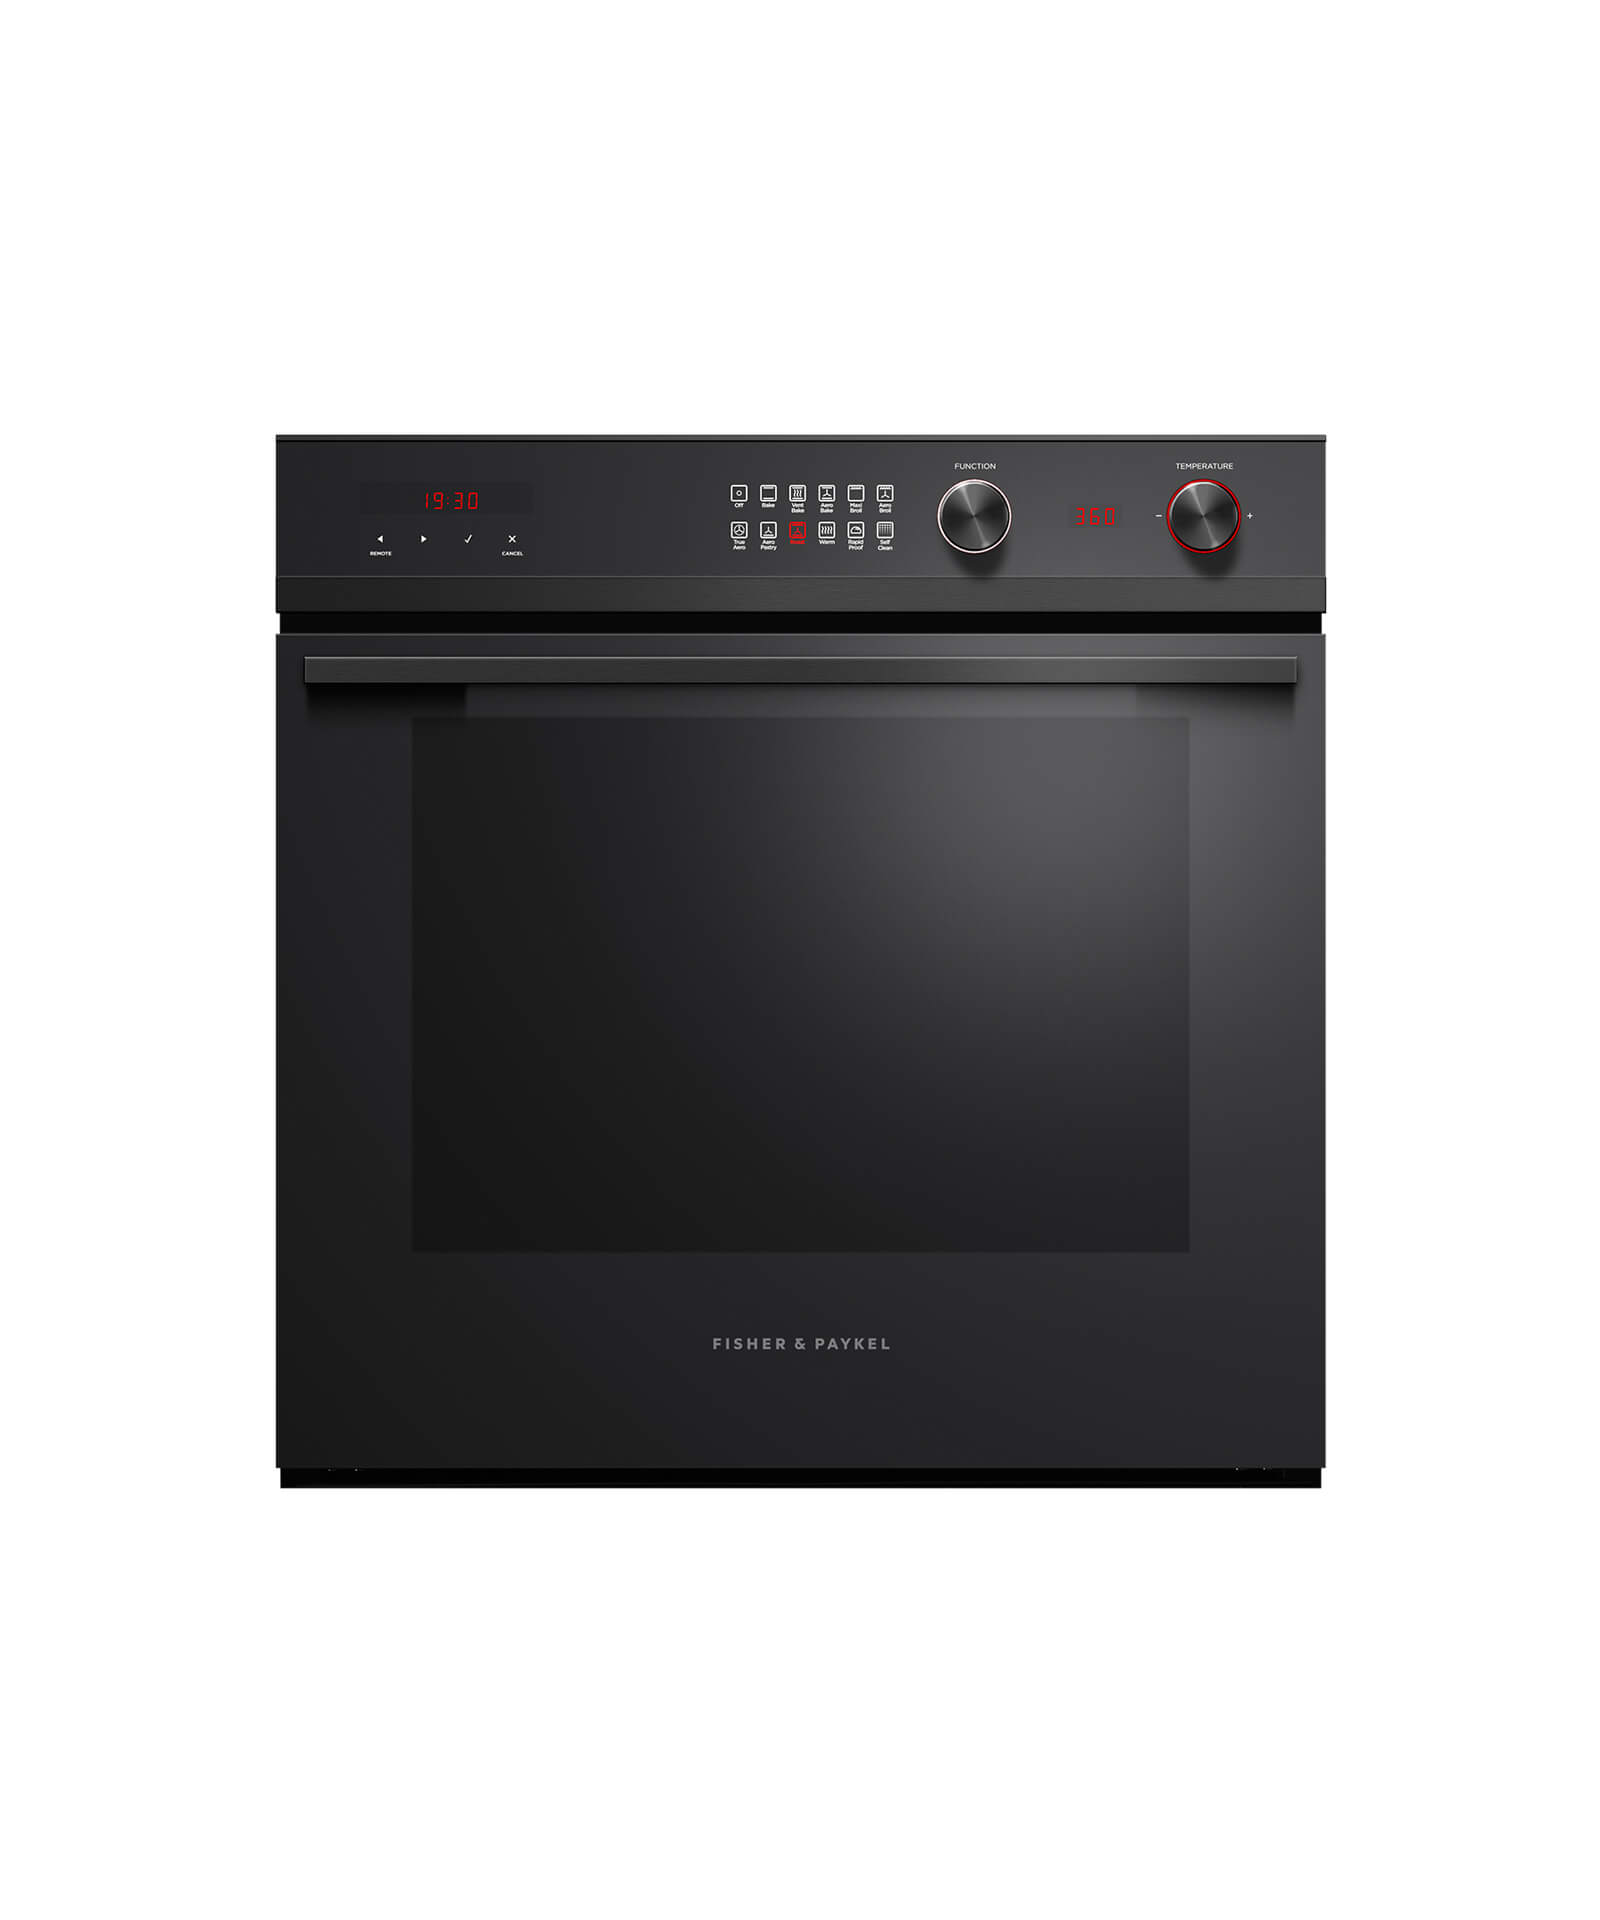 "Fisher and Paykel Built-in Oven, 24"", 3 cu ft, 11 Function, Self-cleaning"